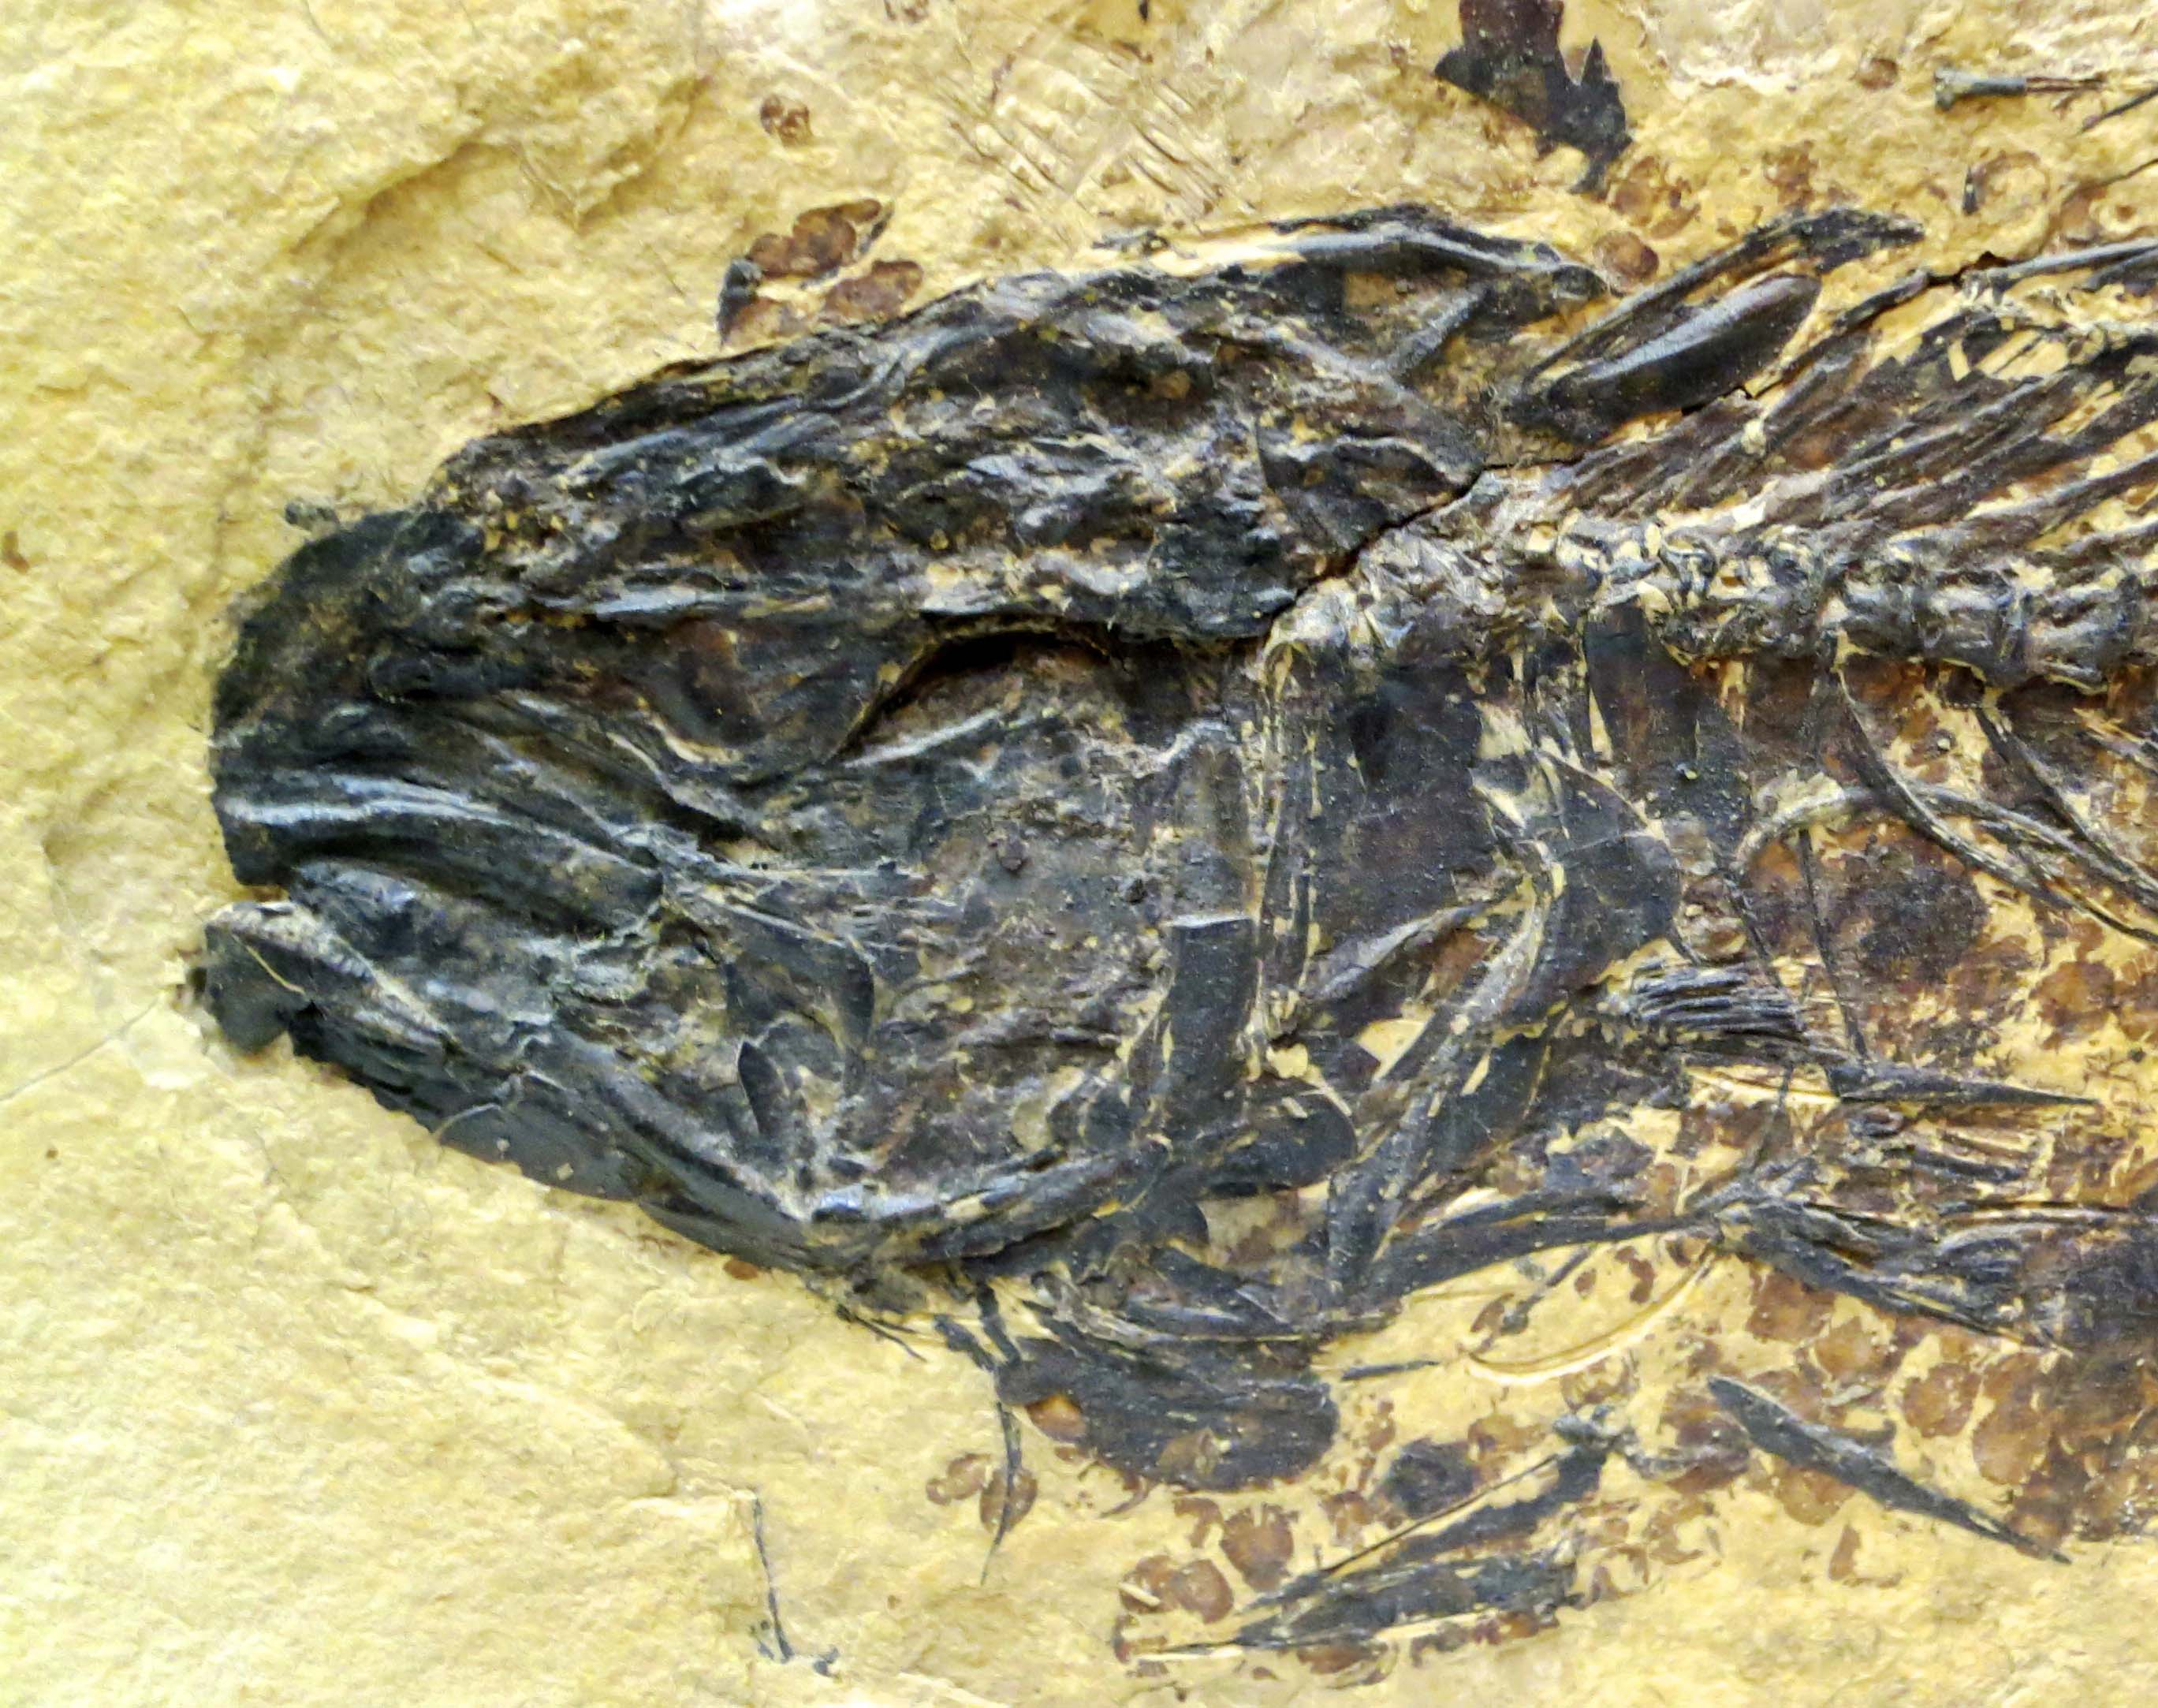 Fossil fish at the Crater Rock Museum in Central Point, Oregon. Photo by Curtis Mekemson.